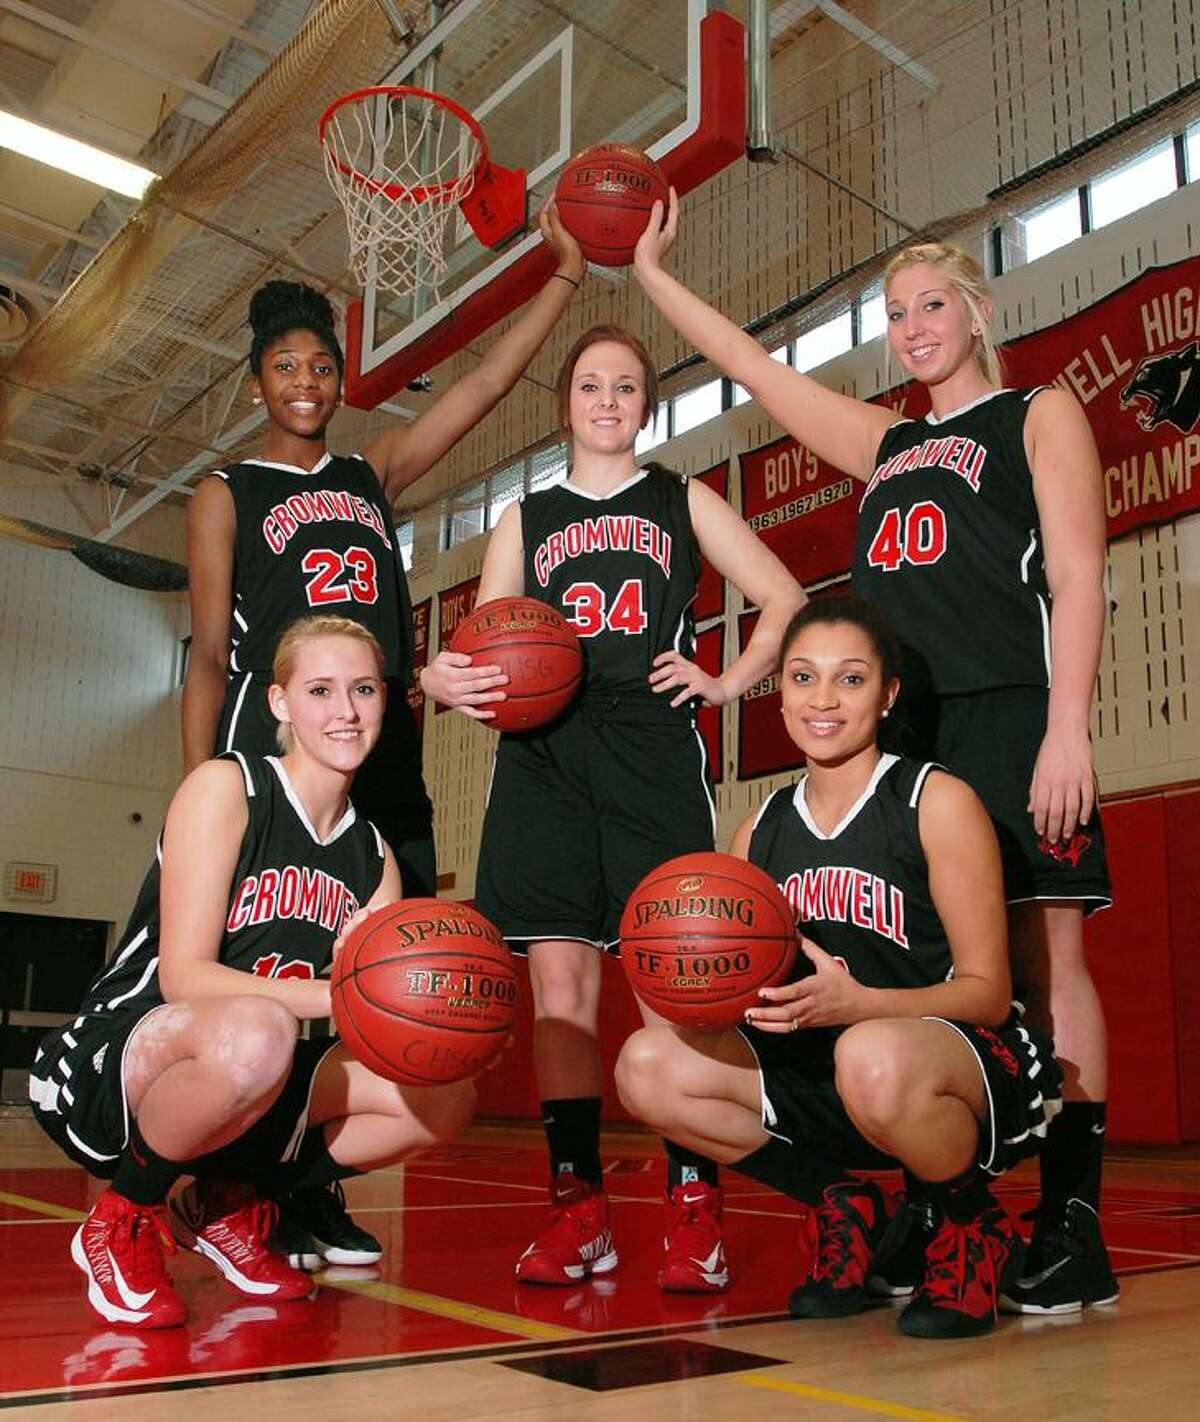 Catherine Avalone/The Middletown Press The starting five for unbeaten Cromwell girls basketball: (front row, left to right) Emily Appleby, Alexa Riley; (second row) Janelle Harrison, Kelly Flanigan, Lindsay Langenauer. Cromwell (13-0) plays at Old Saybrook Friday at 7.